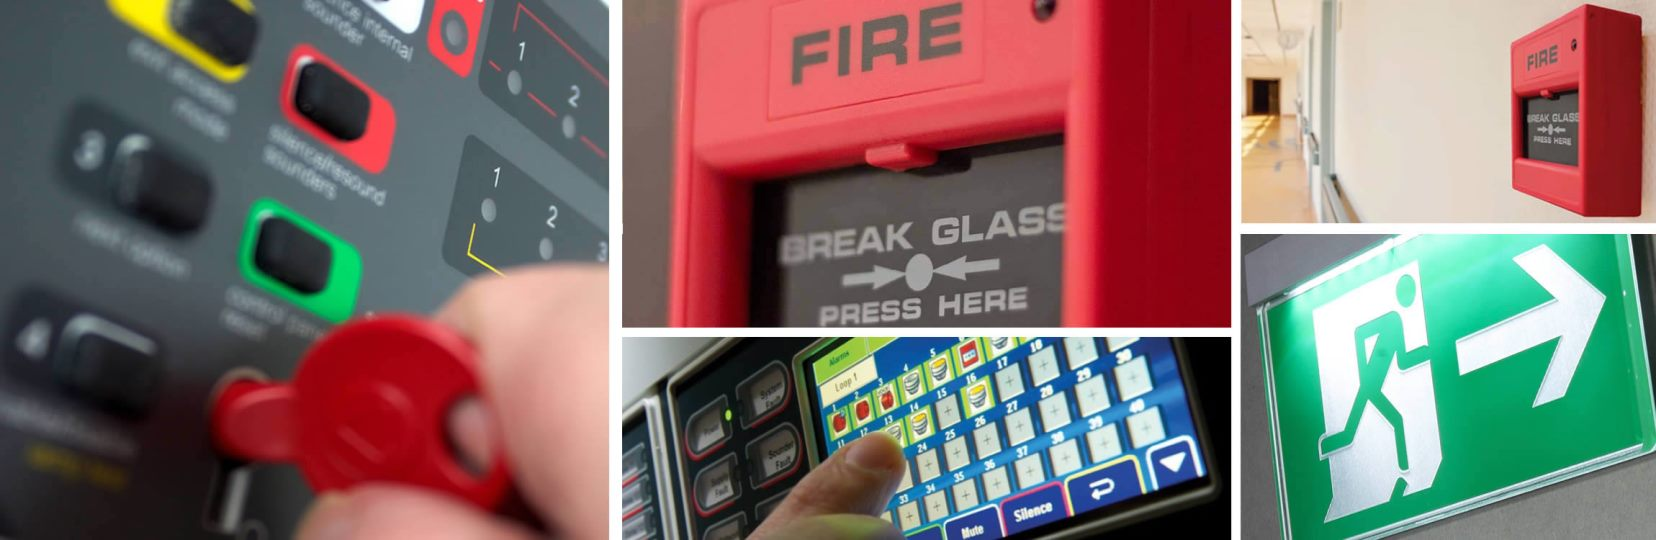 Integrated Fire Alarm Systems